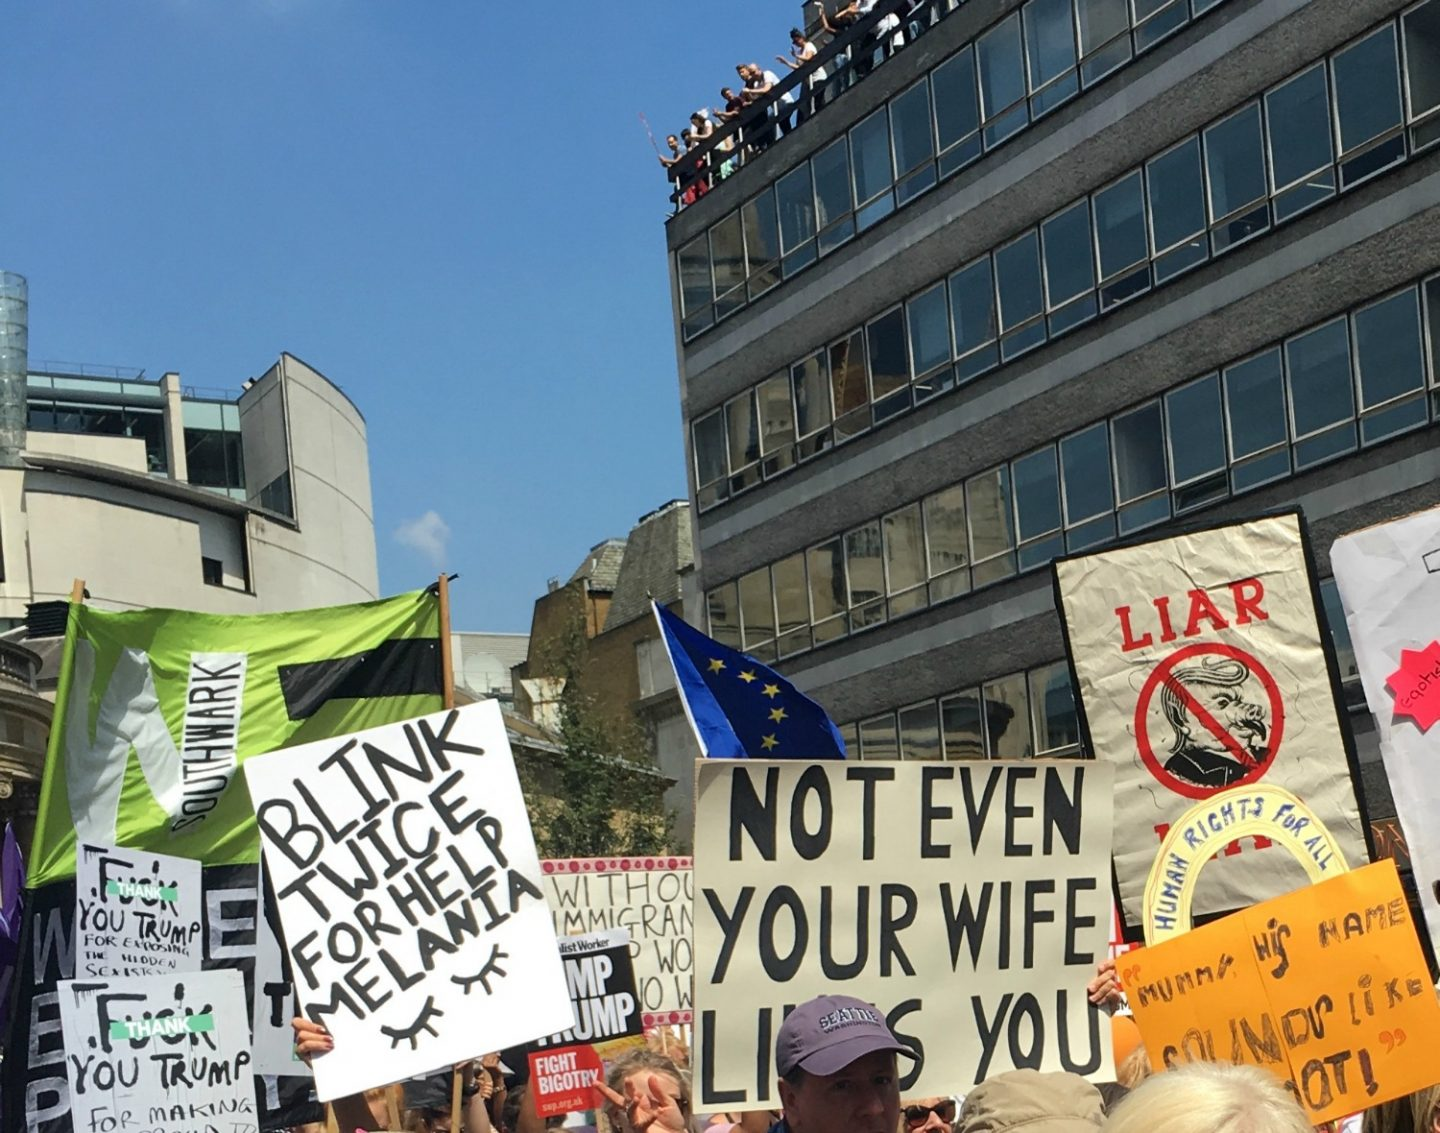 Signs at the Women's March London